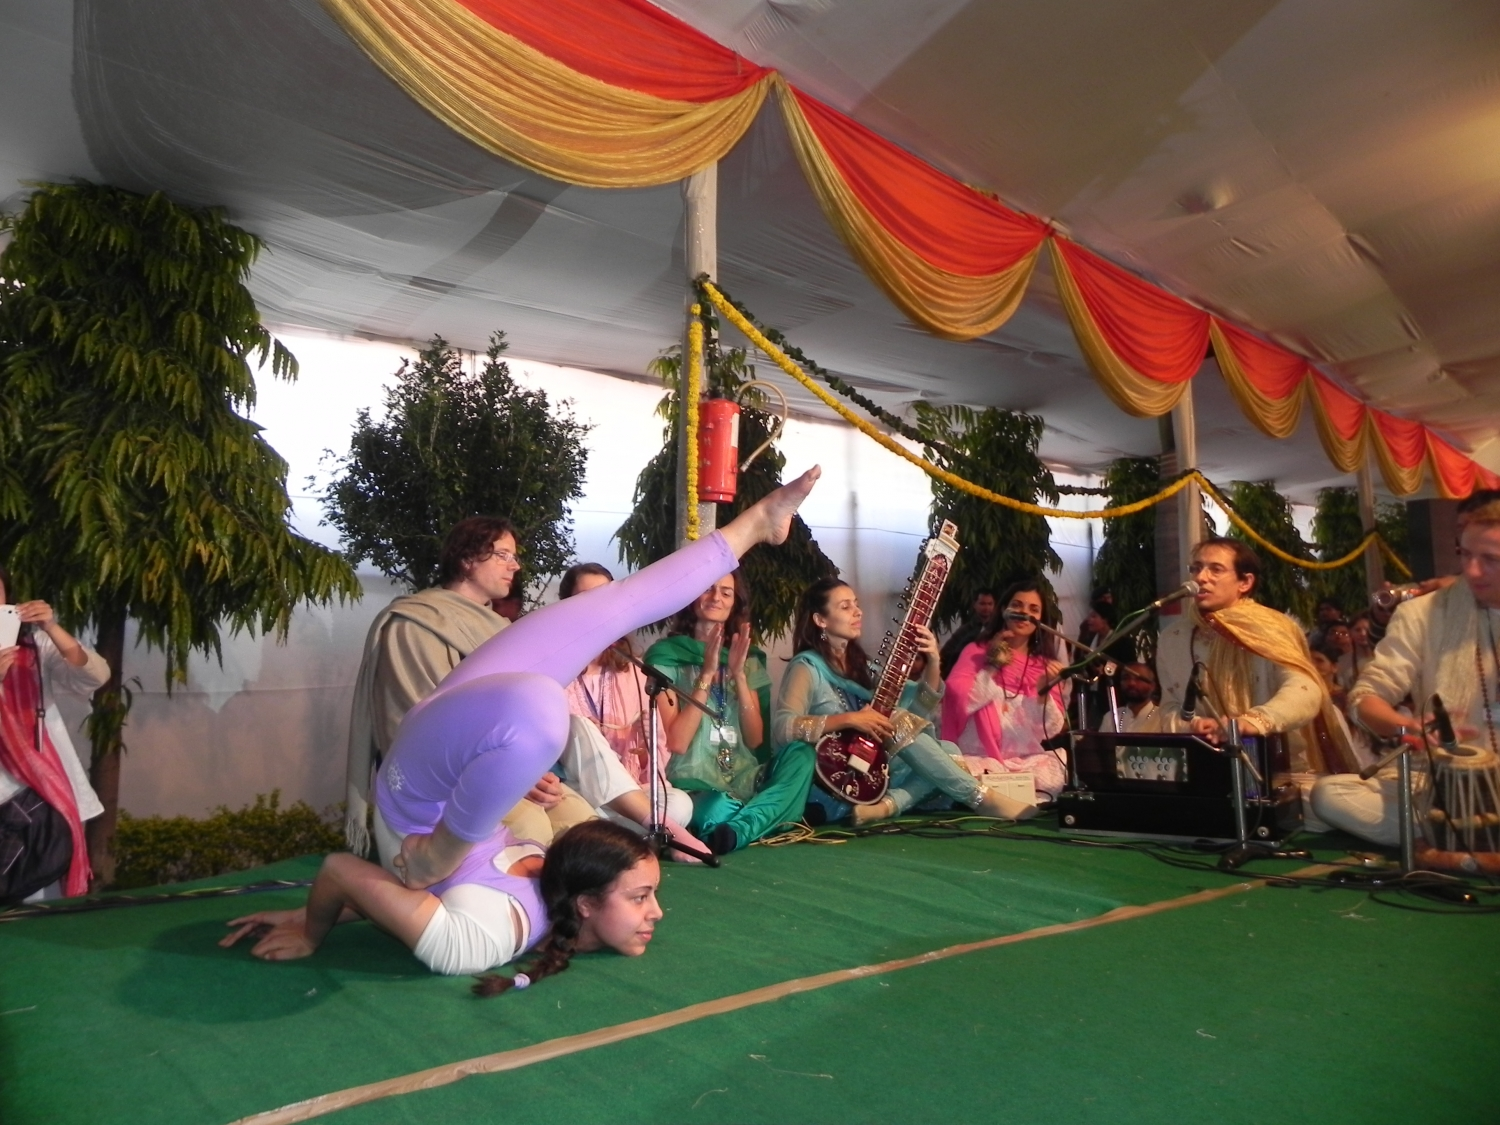 International Yoga Festival - rshikesh, India - 2013, marzo